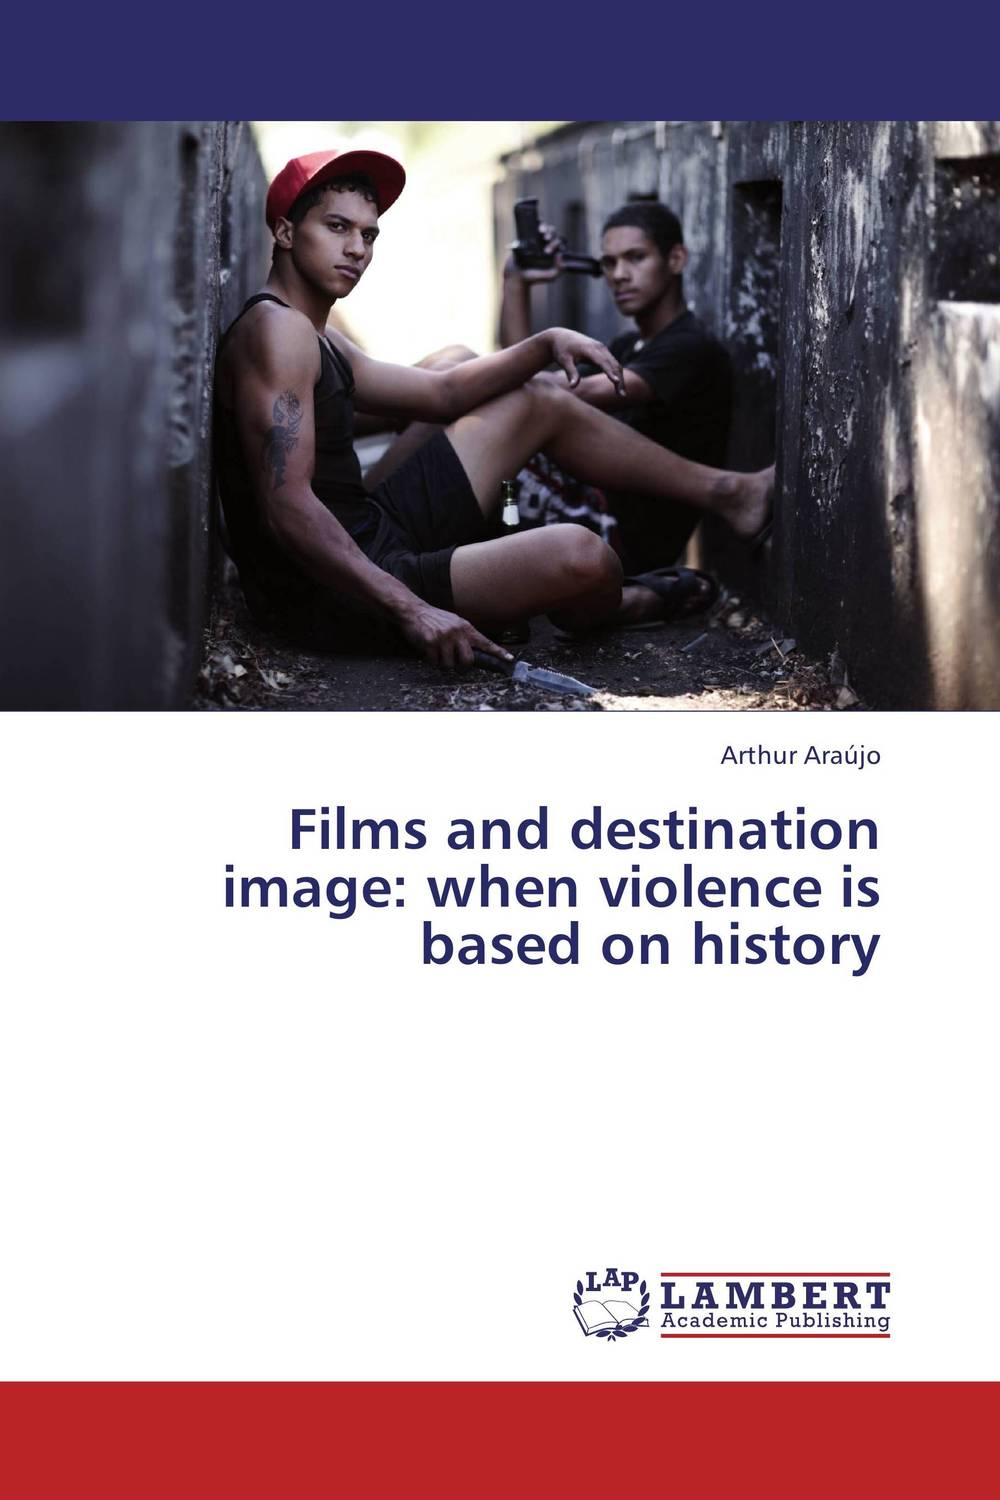 Films and destination image: when violence is based on history land of great image